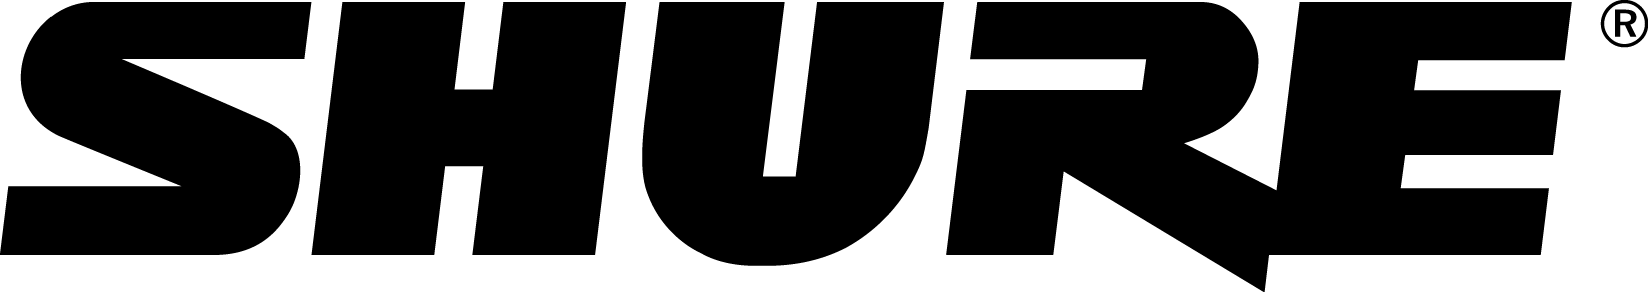 Shure-Logo-without-Tagline_Black.png